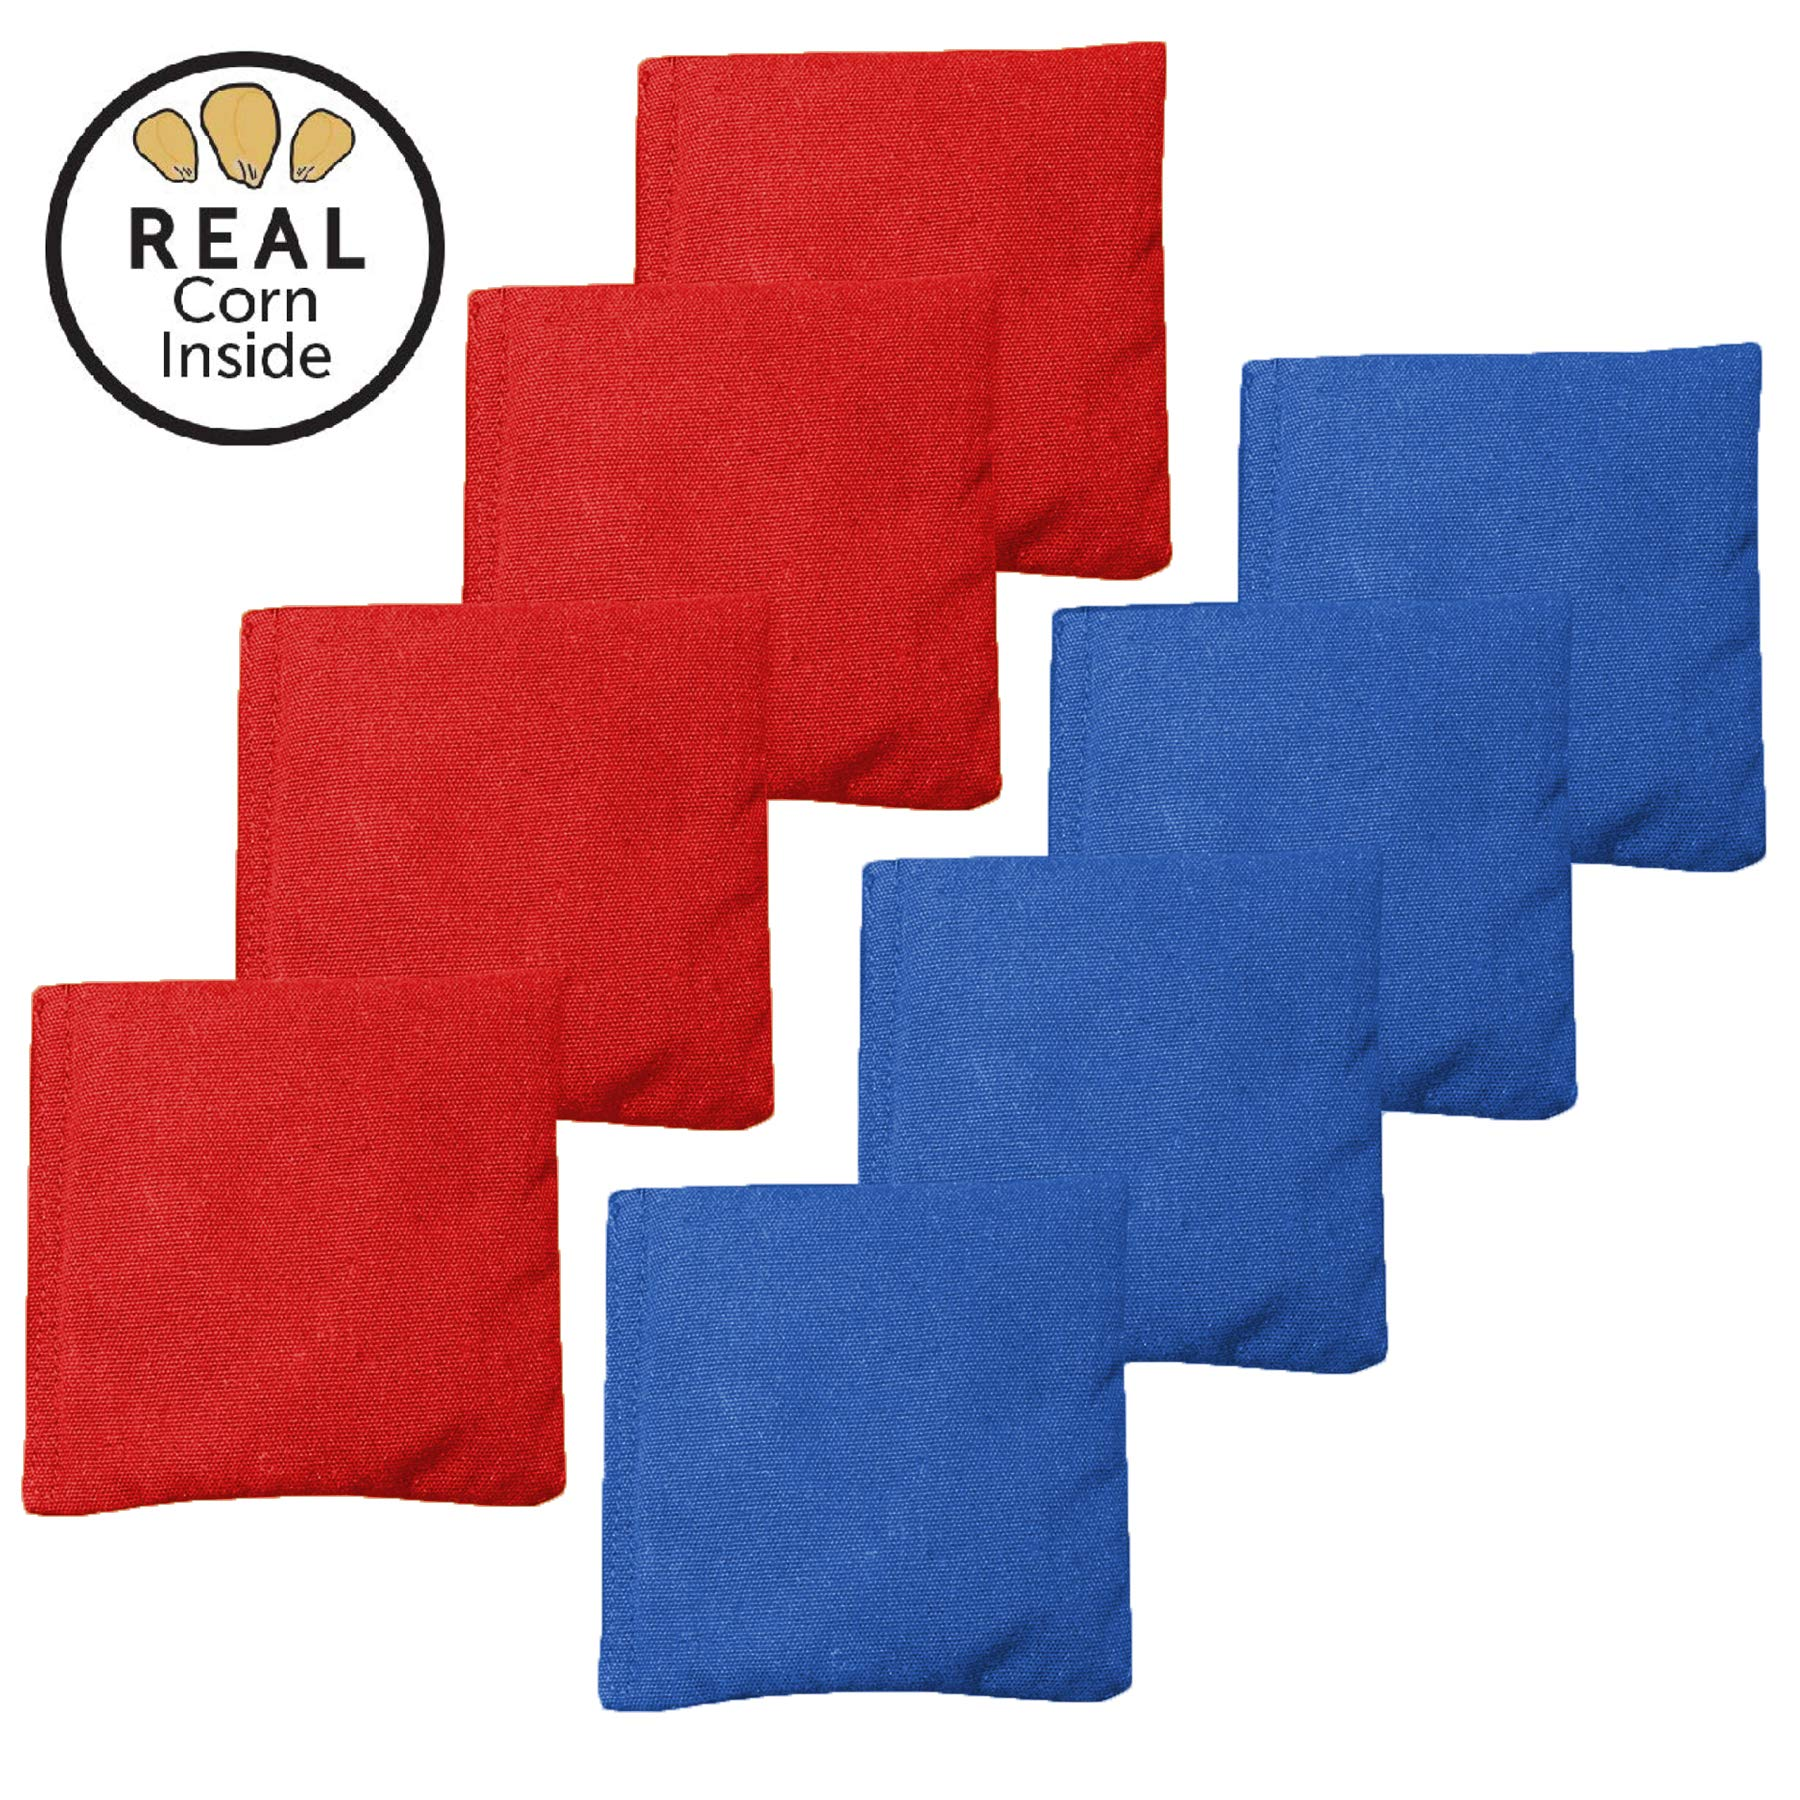 Real Corn Filled Cornhole Bags - Set of 8 Bean Bags for Corn Hole Game - Regulation Size & Weight - Red and Blue